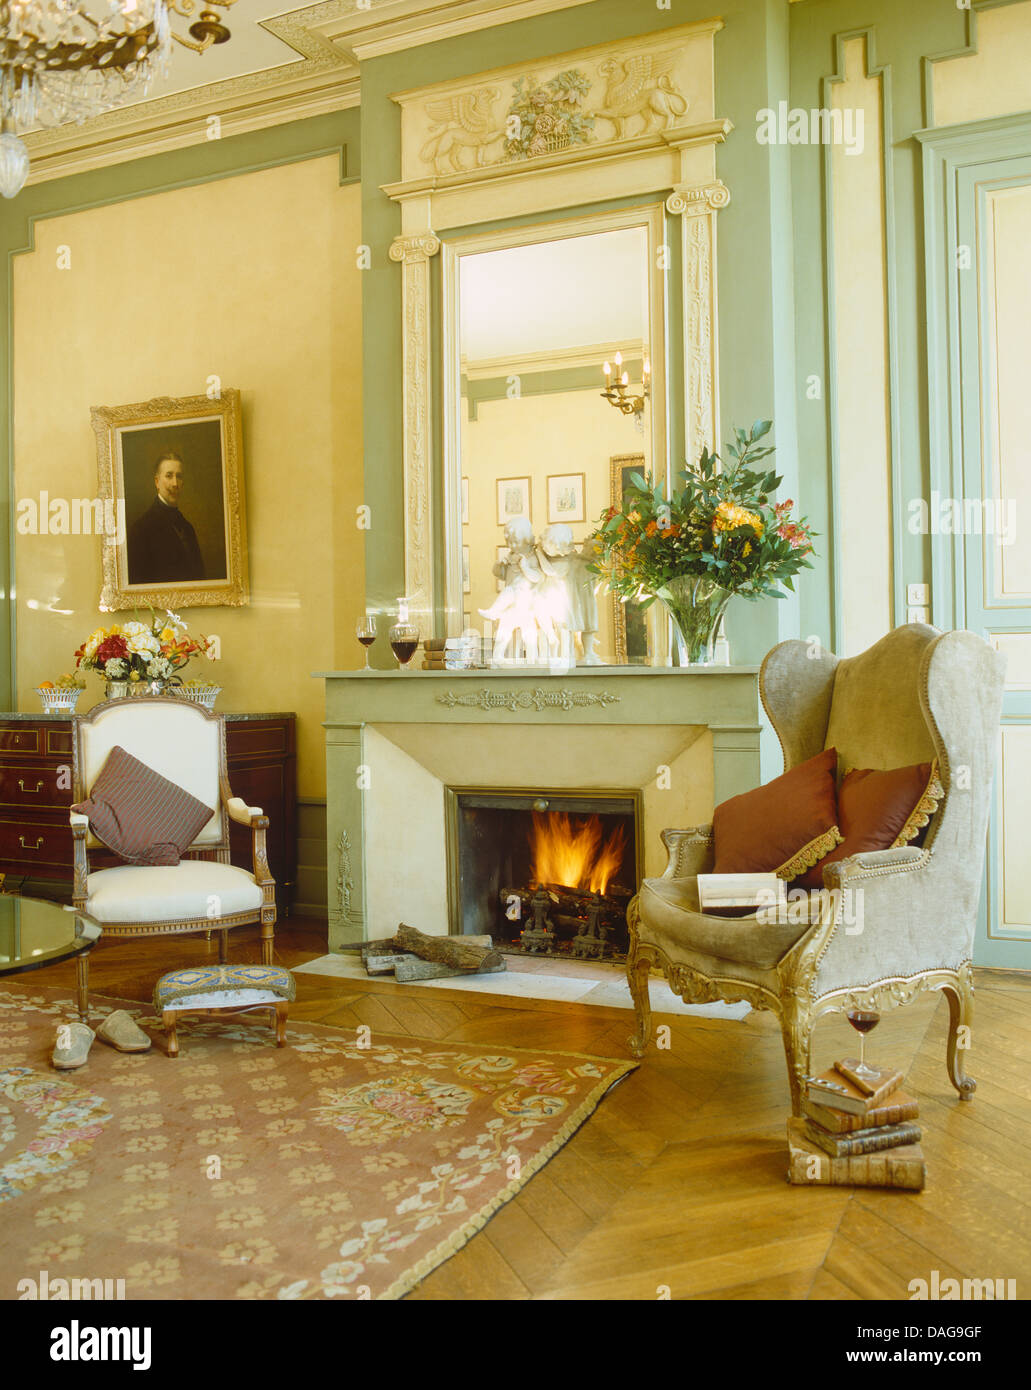 Wing Chair And Small Upholstered Chair On Either Side Of Fireplace Below  Tall Mirror In French Country Sitting Room